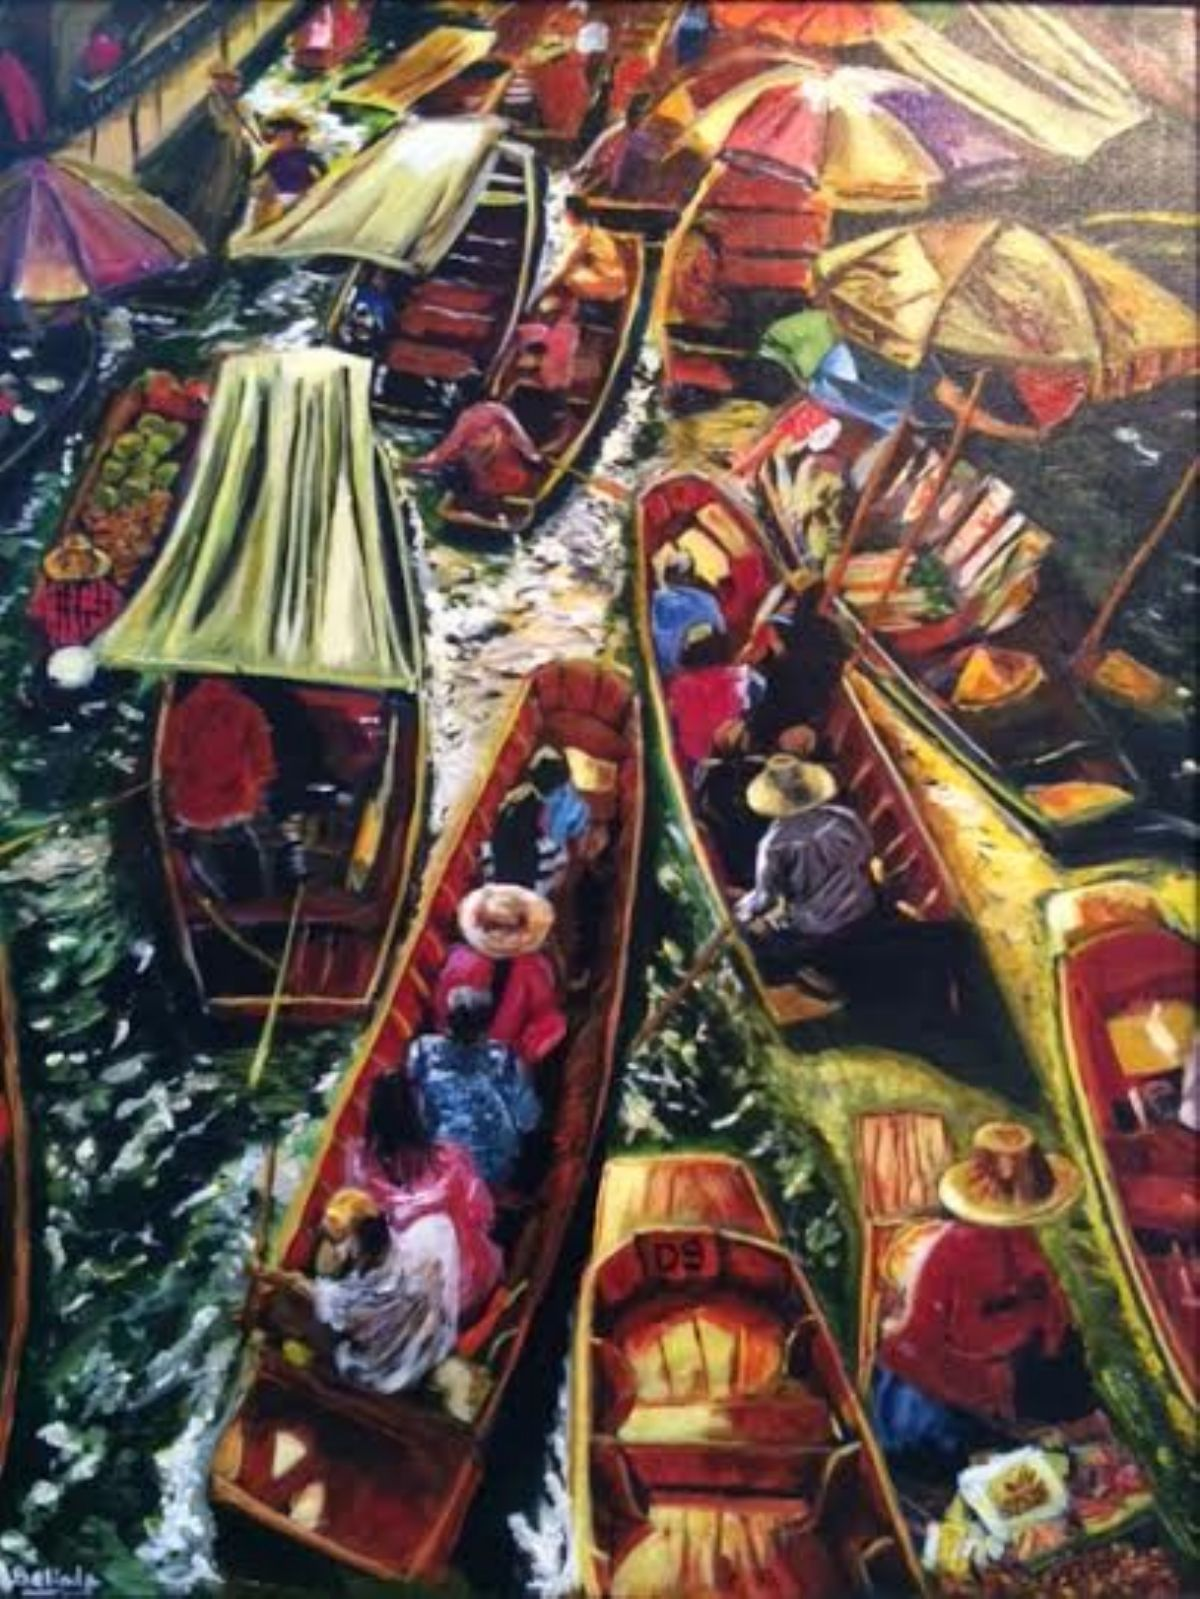 In The Same Boat artwork by Belinda Low - art listed for sale on Artplode